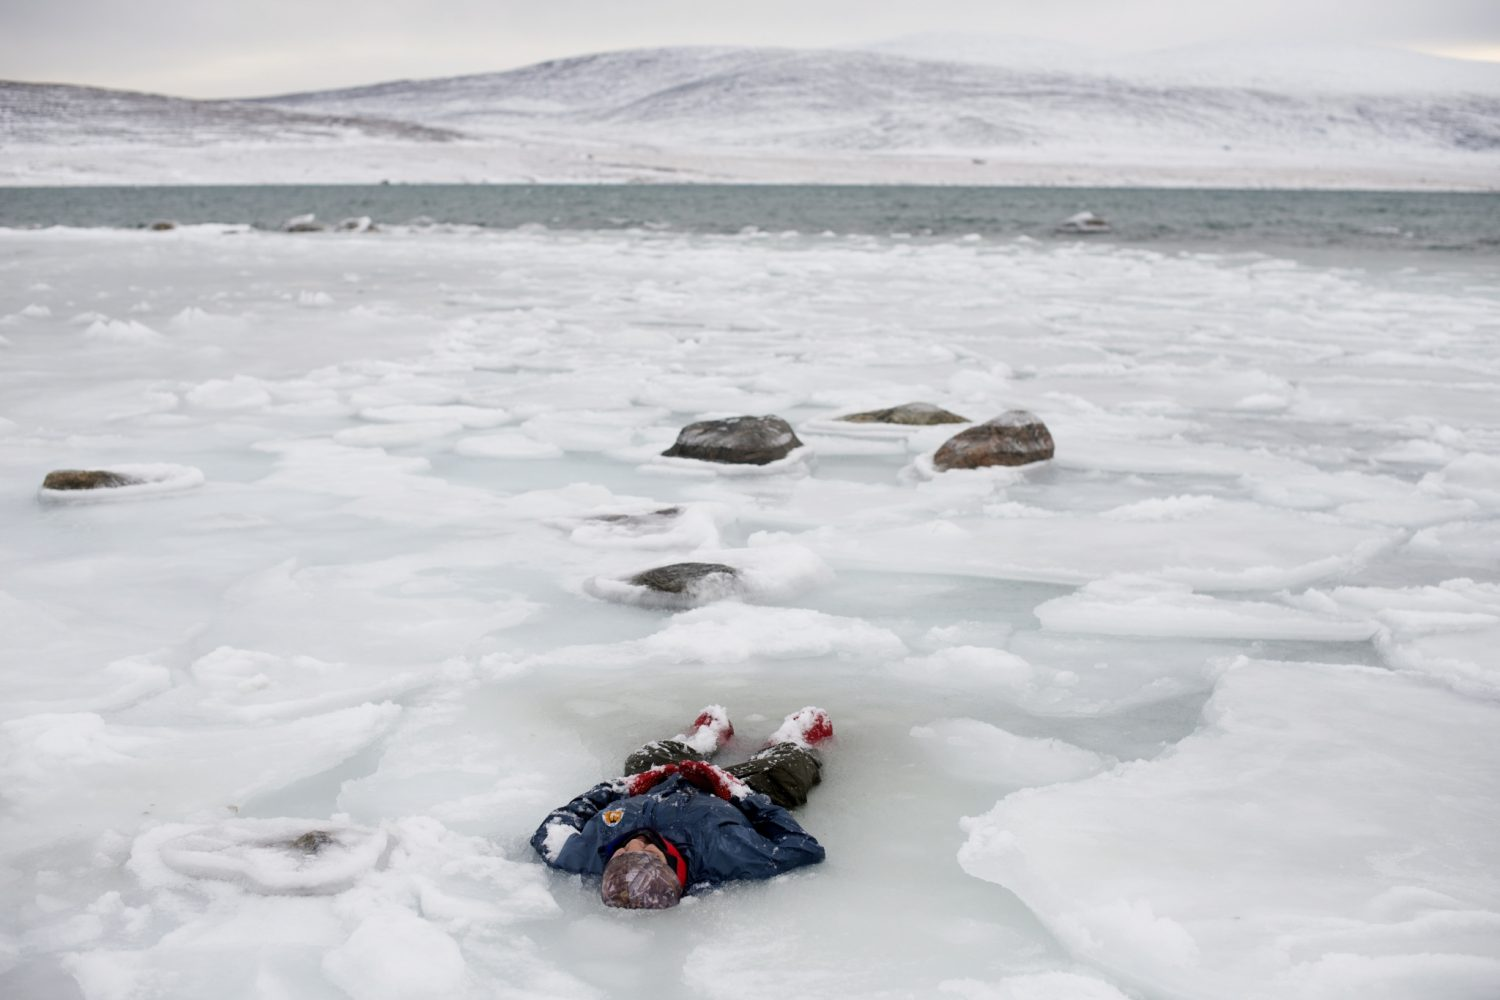 Canadian Ranger training for survival in the bay, Clyde River, Nunavut, Canada